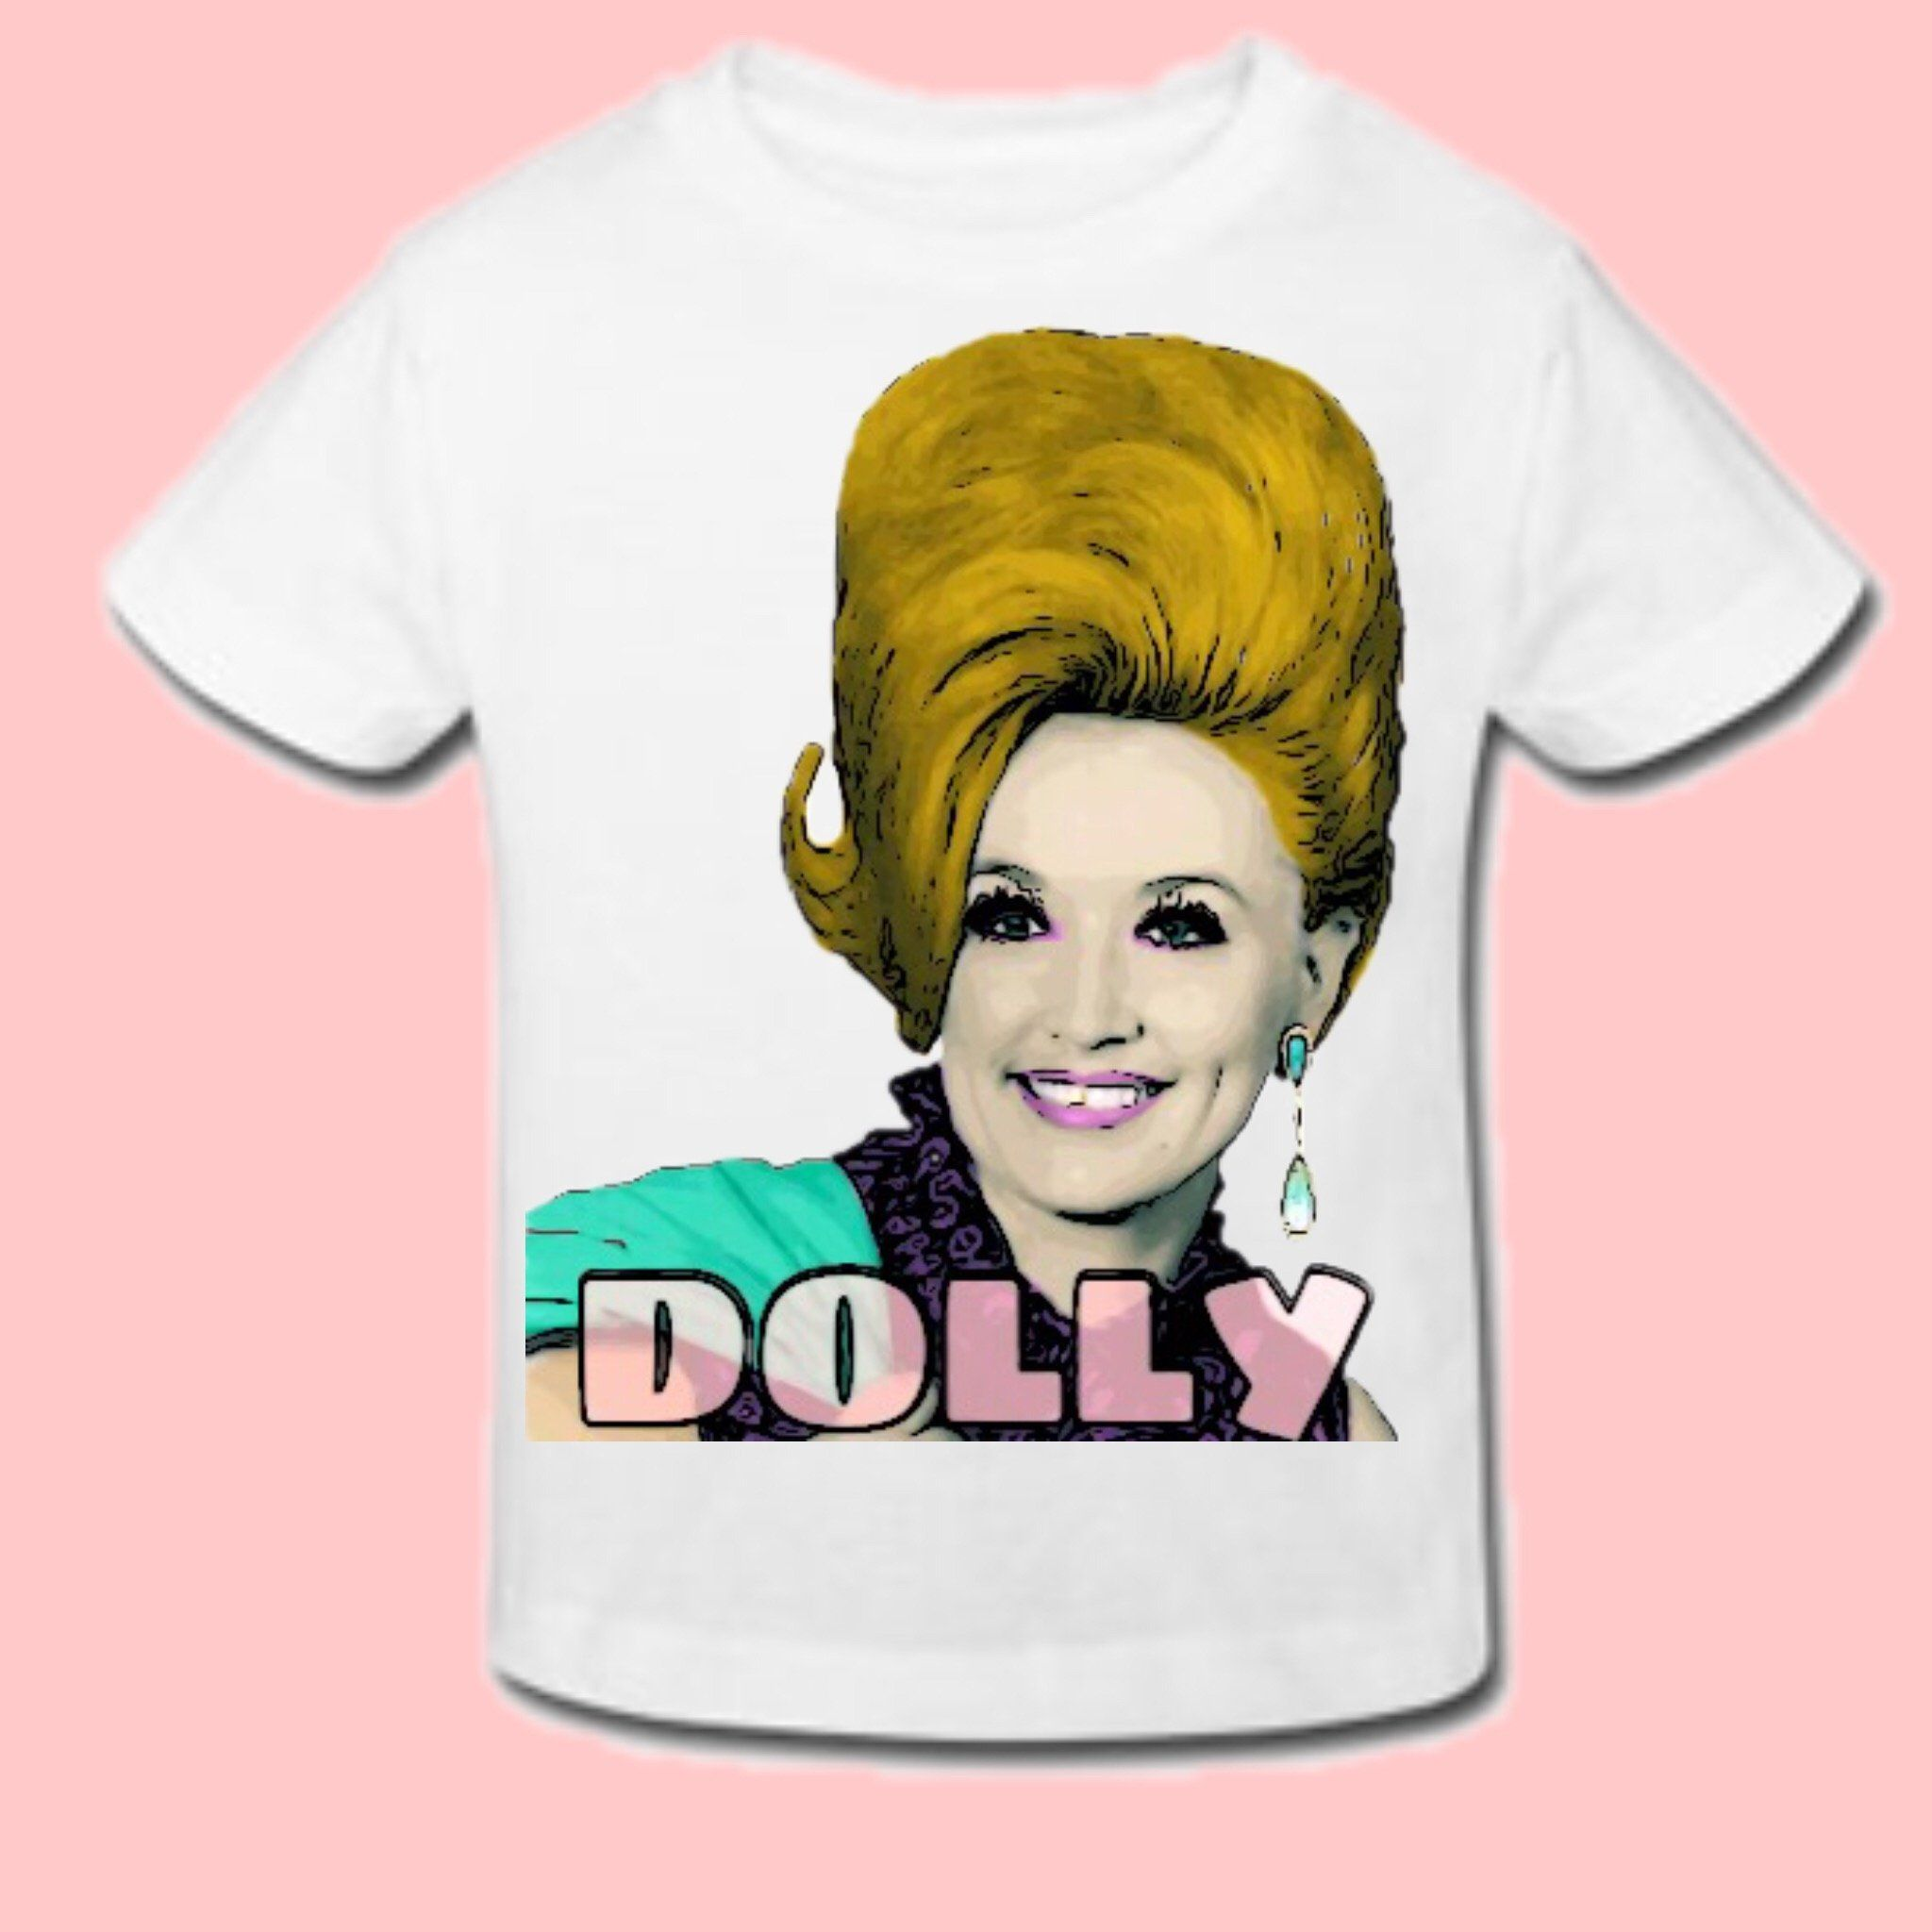 61d58a17f DOLLY PARTON T-SHIRT|ONESIE|ROMPER | Products | Pinterest | Products